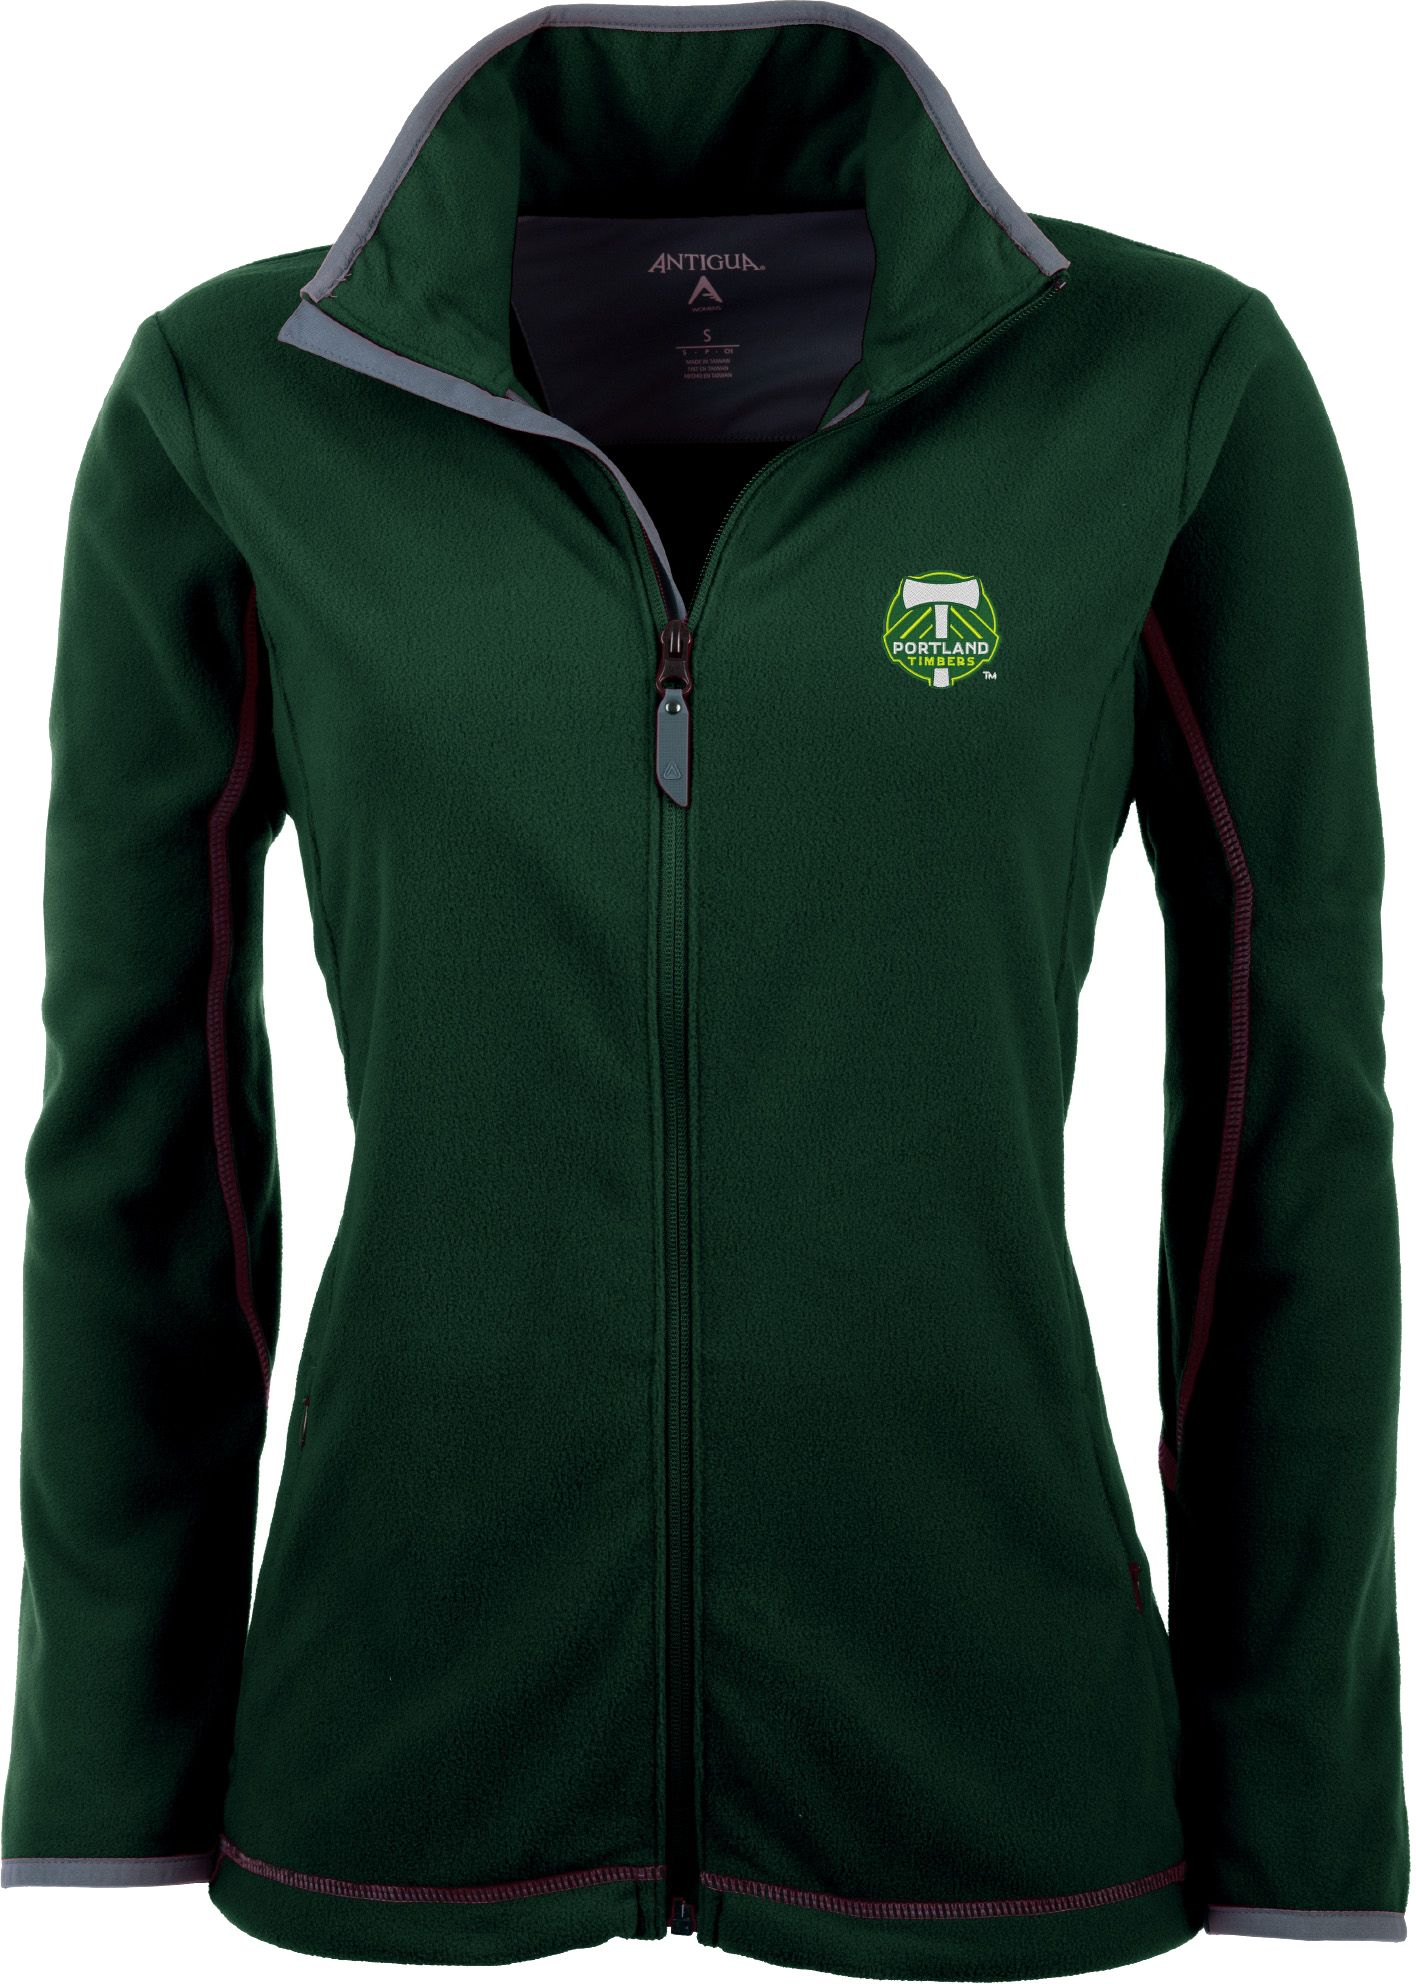 Antigua Women's Portland Timbers Hunter Green Ice Full-Zip Fleece Jacket, Size: Small thumbnail